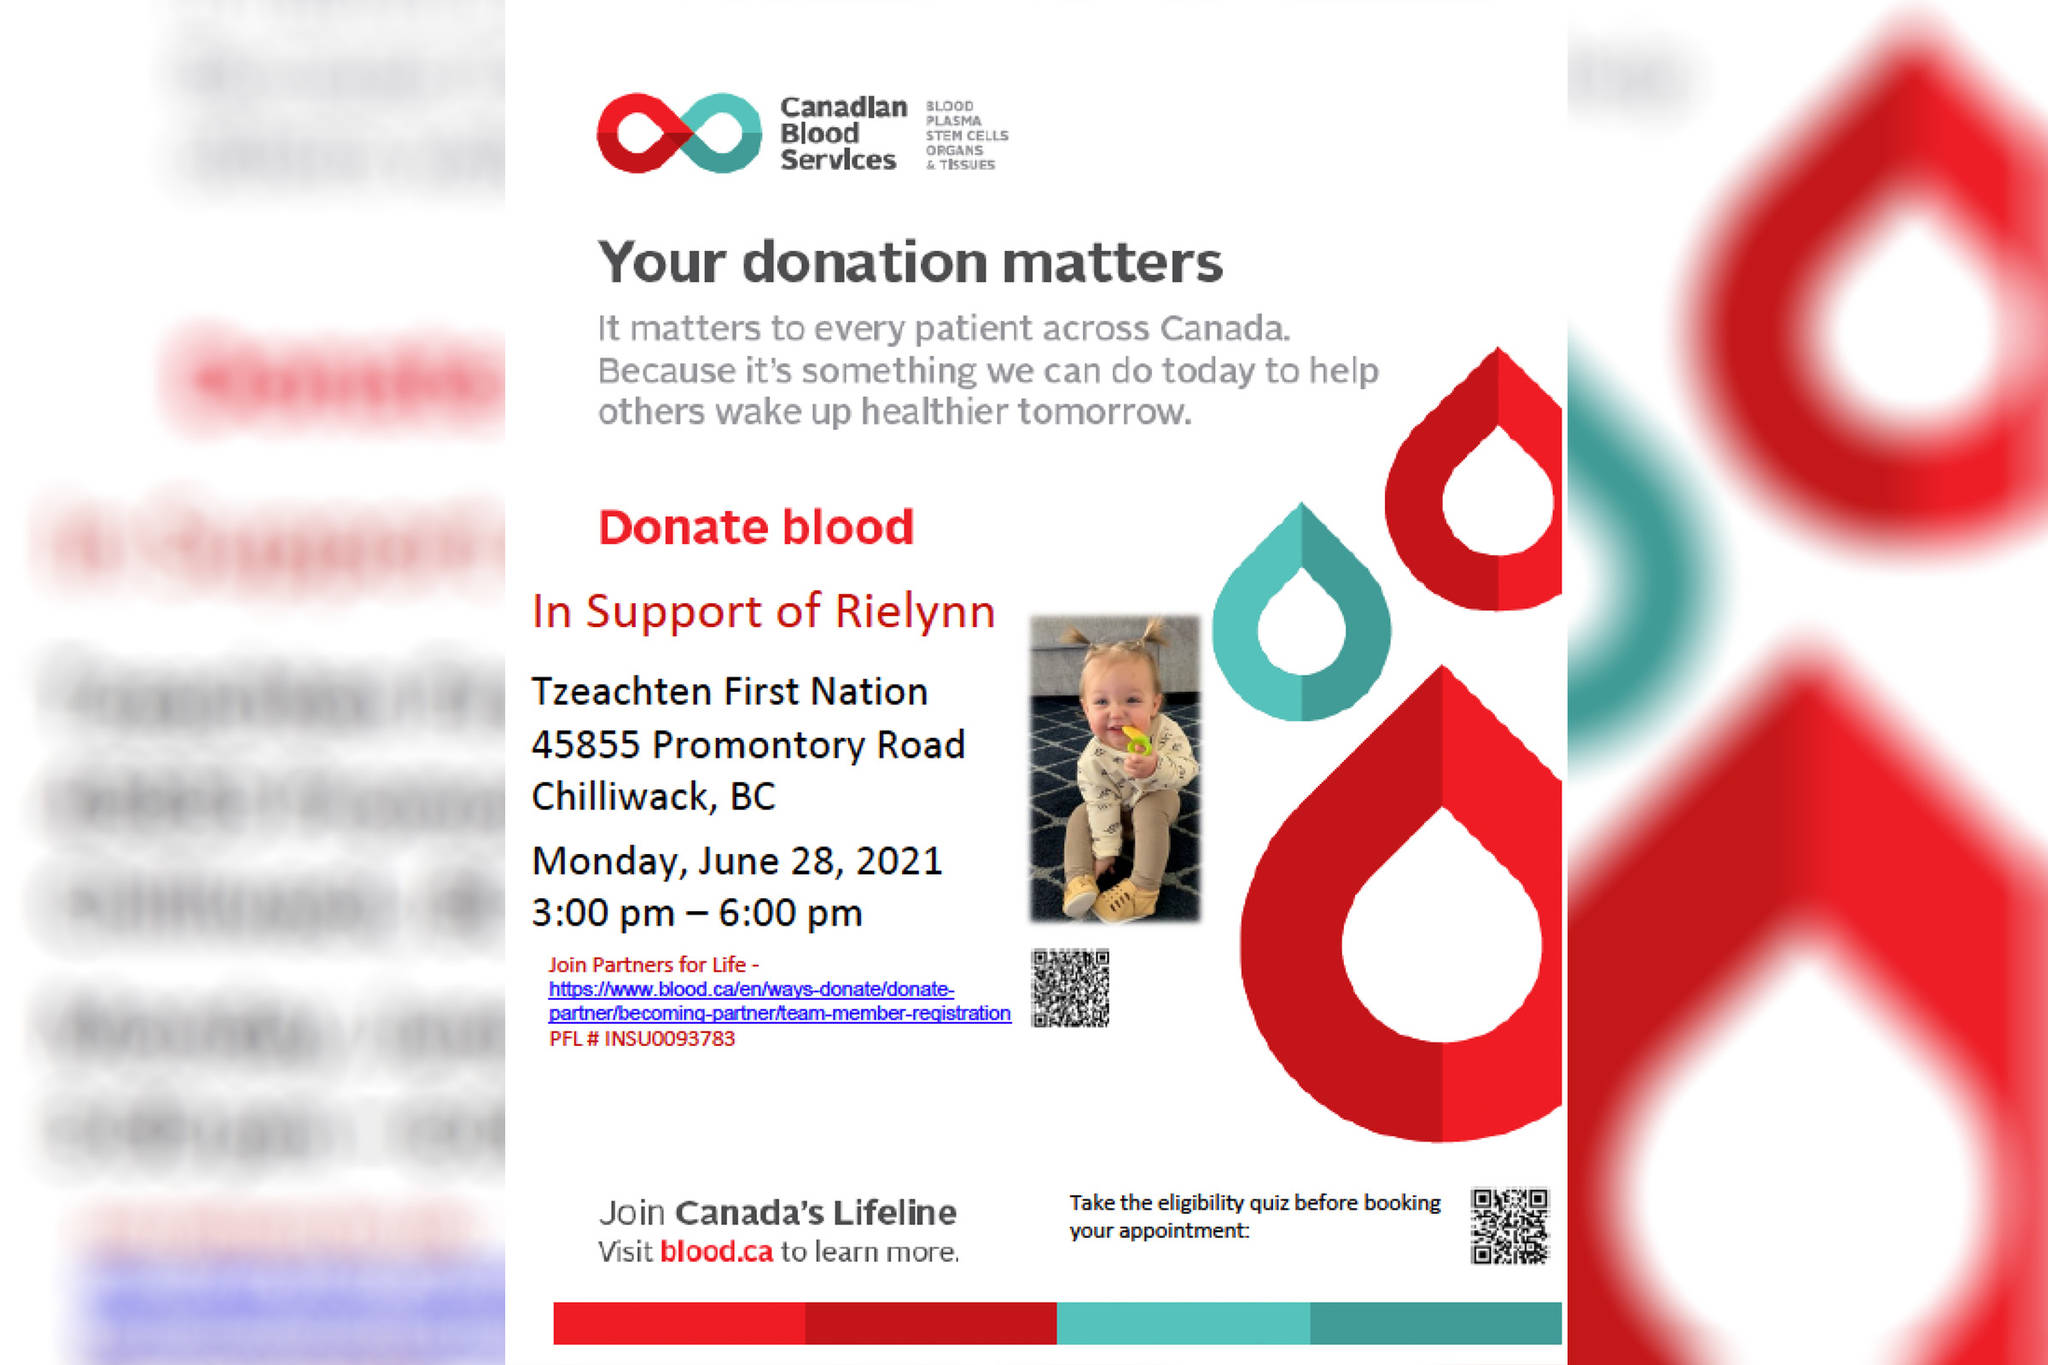 A blood drive in support of 1-year-old Rielynn Gormley of Agassiz is scheduled for Monday, June 28 at Tzeachten First Nation Community Hall in Chilliwack. Rielynn lives with type 3 von Willebrand disease, which makes it difficult for her to stop bleeding. (Screenshot/Canadian Blood Services)